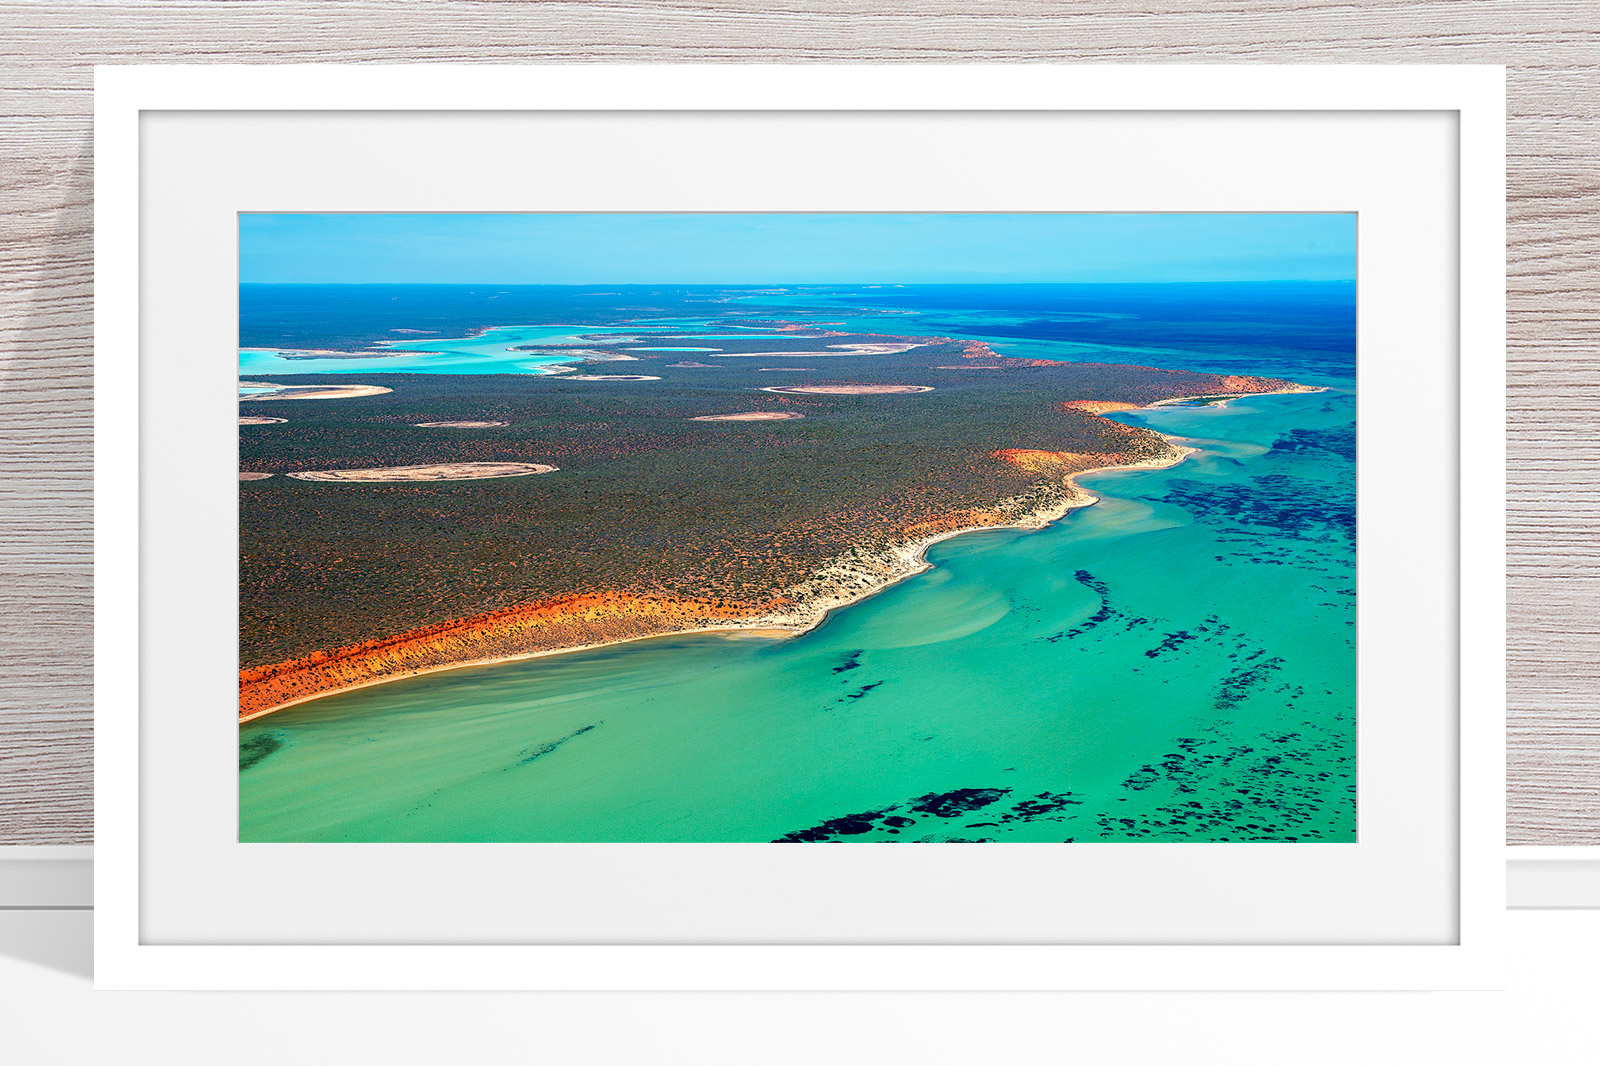 008 - Jason Mazur - 'Shark Bay Coastline' White Frame